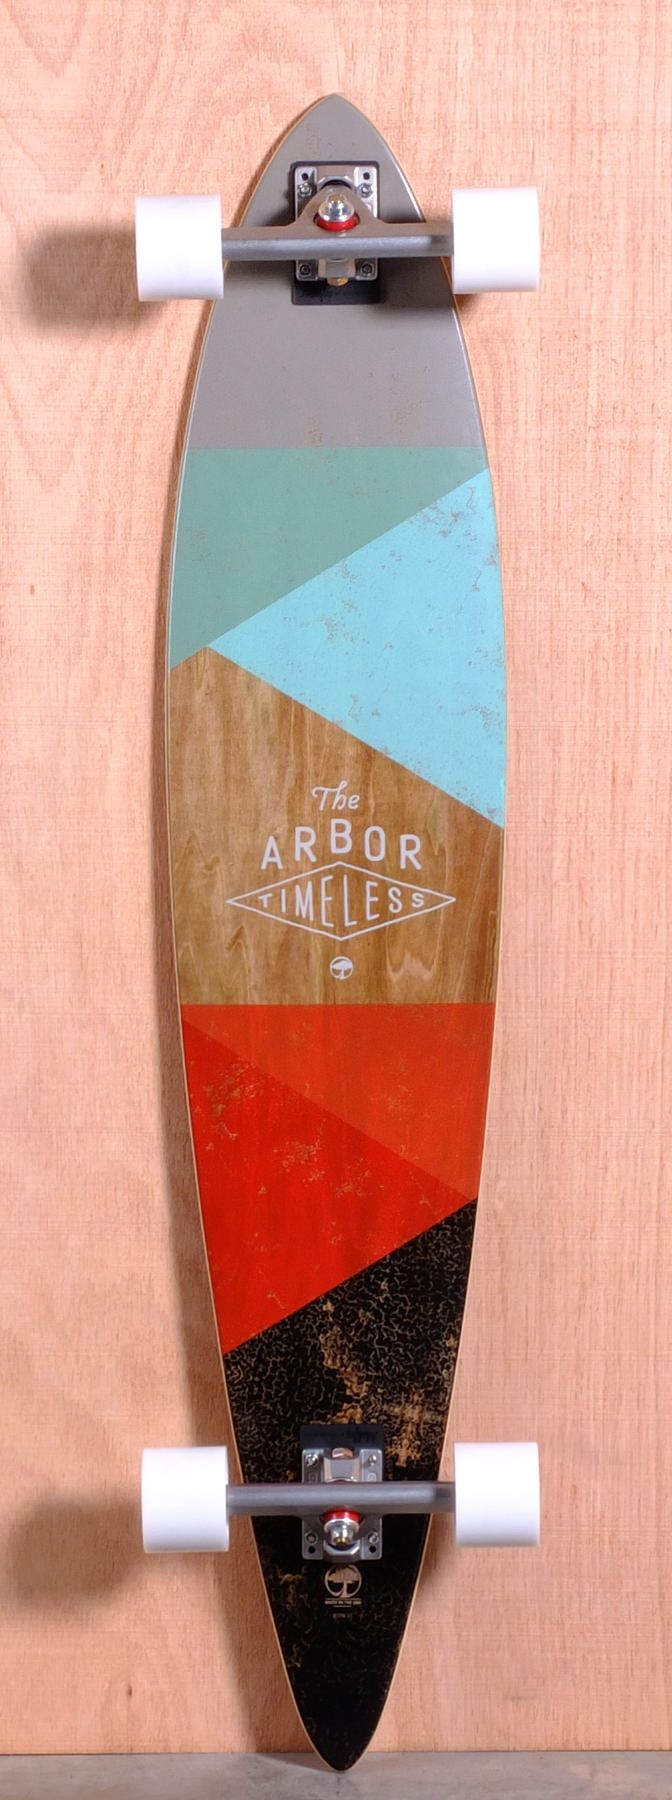 The Arbor Longboard. Abstract use of geometric shapes and combination of pastel and organic textures, creating a mellow mood for the board. Reinforcing the cruising nature of the longboard which contrasts to the nature of  a skateboard. The brands identity exists central of the board complimenting the aesthetics of the rest of the longboards deck design.